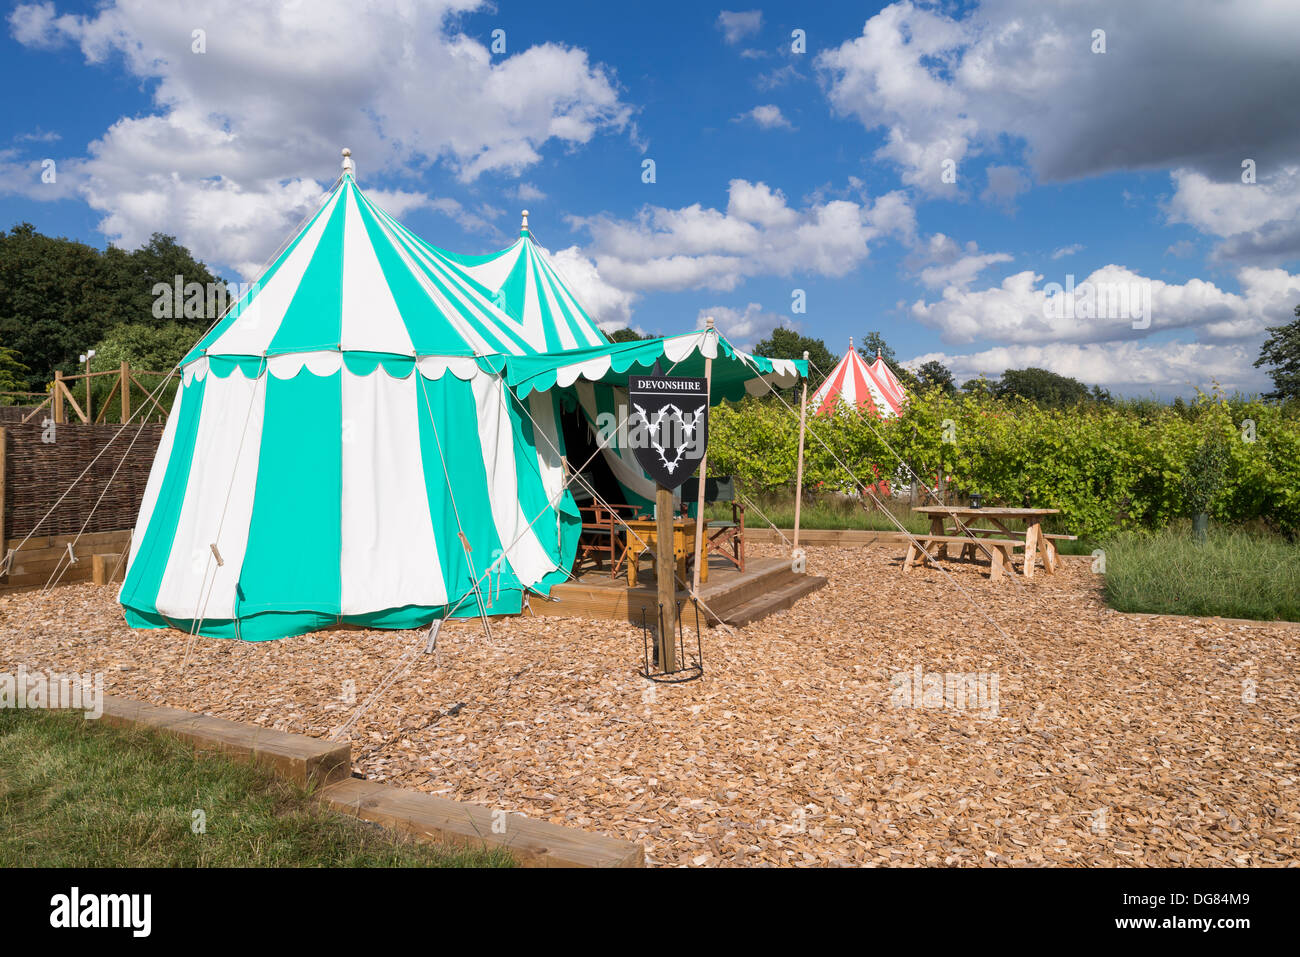 Glamping at Leeds Castle, Kent - Stock Image